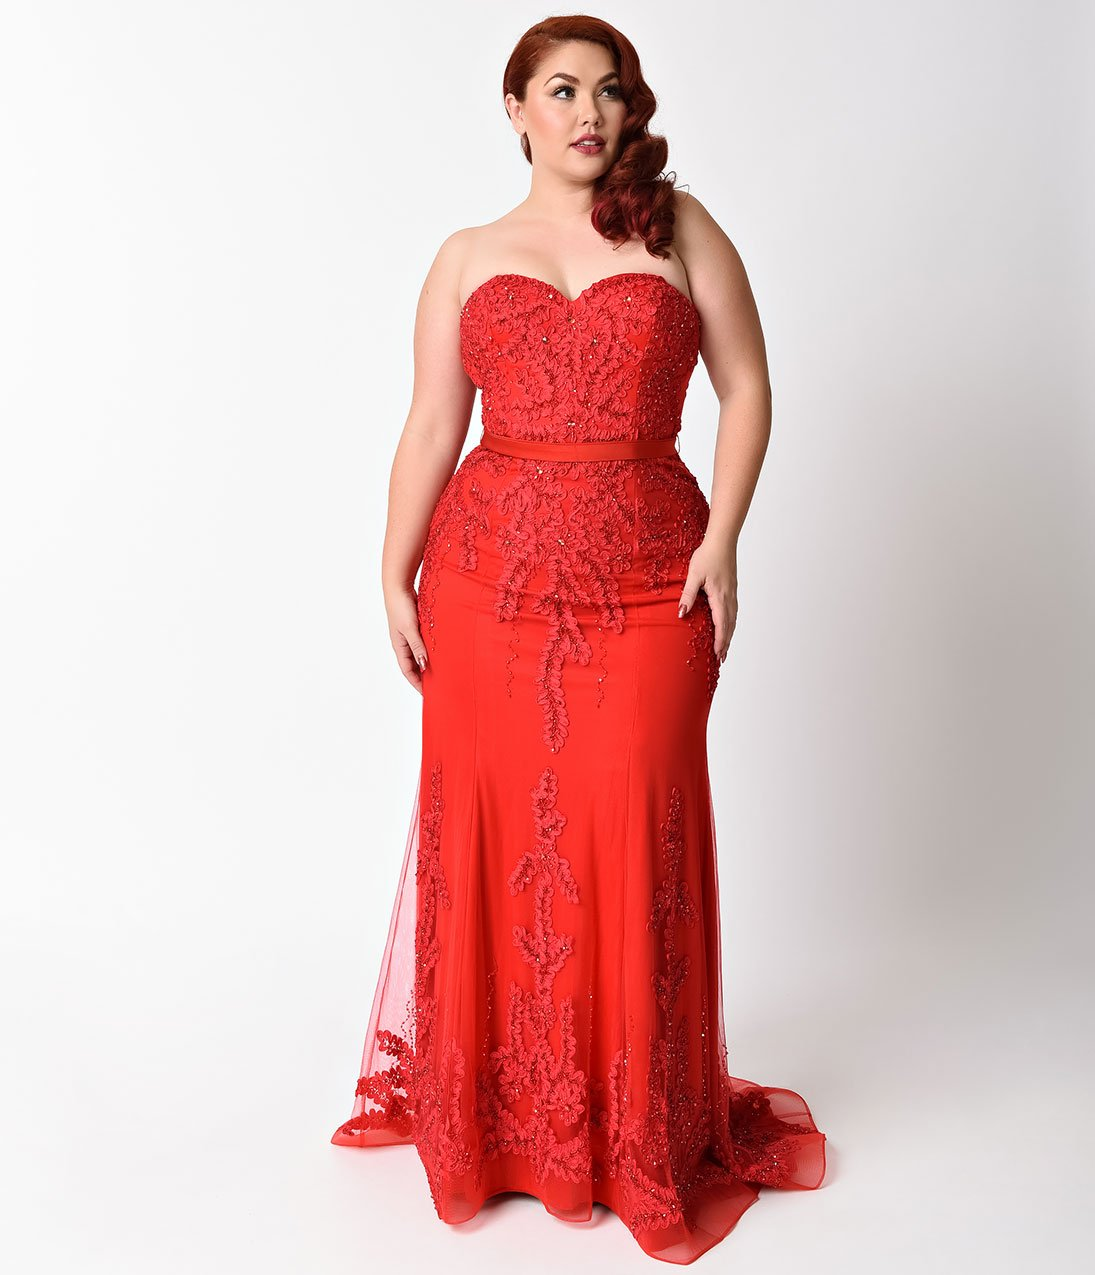 Plus size red strapless embellished long dress for prom